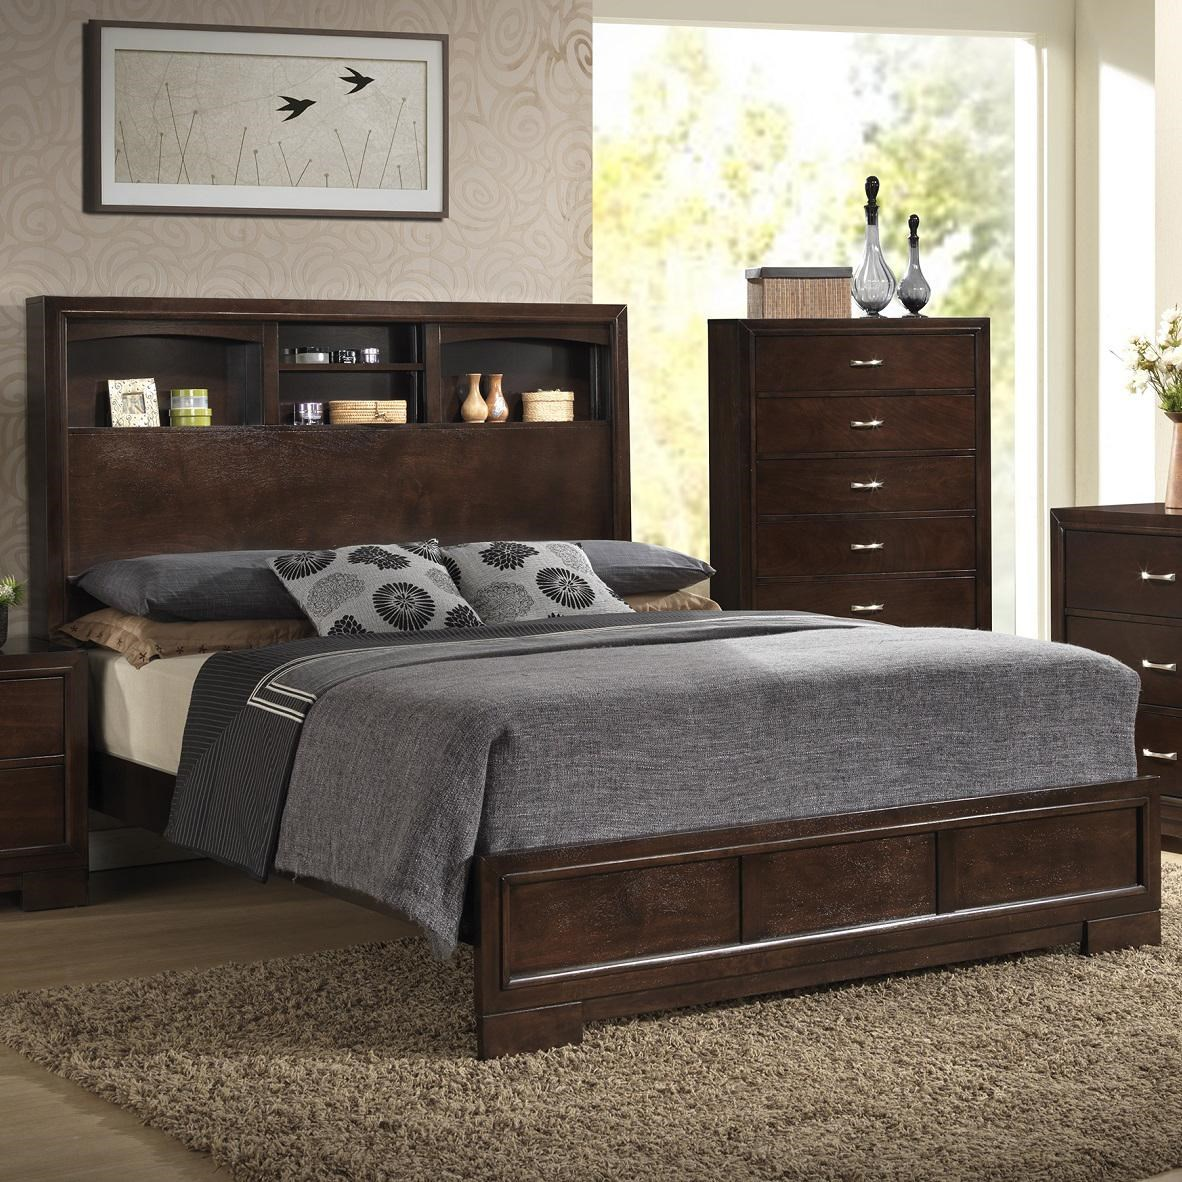 Lifestyle BookieQueen Bookcase Bed